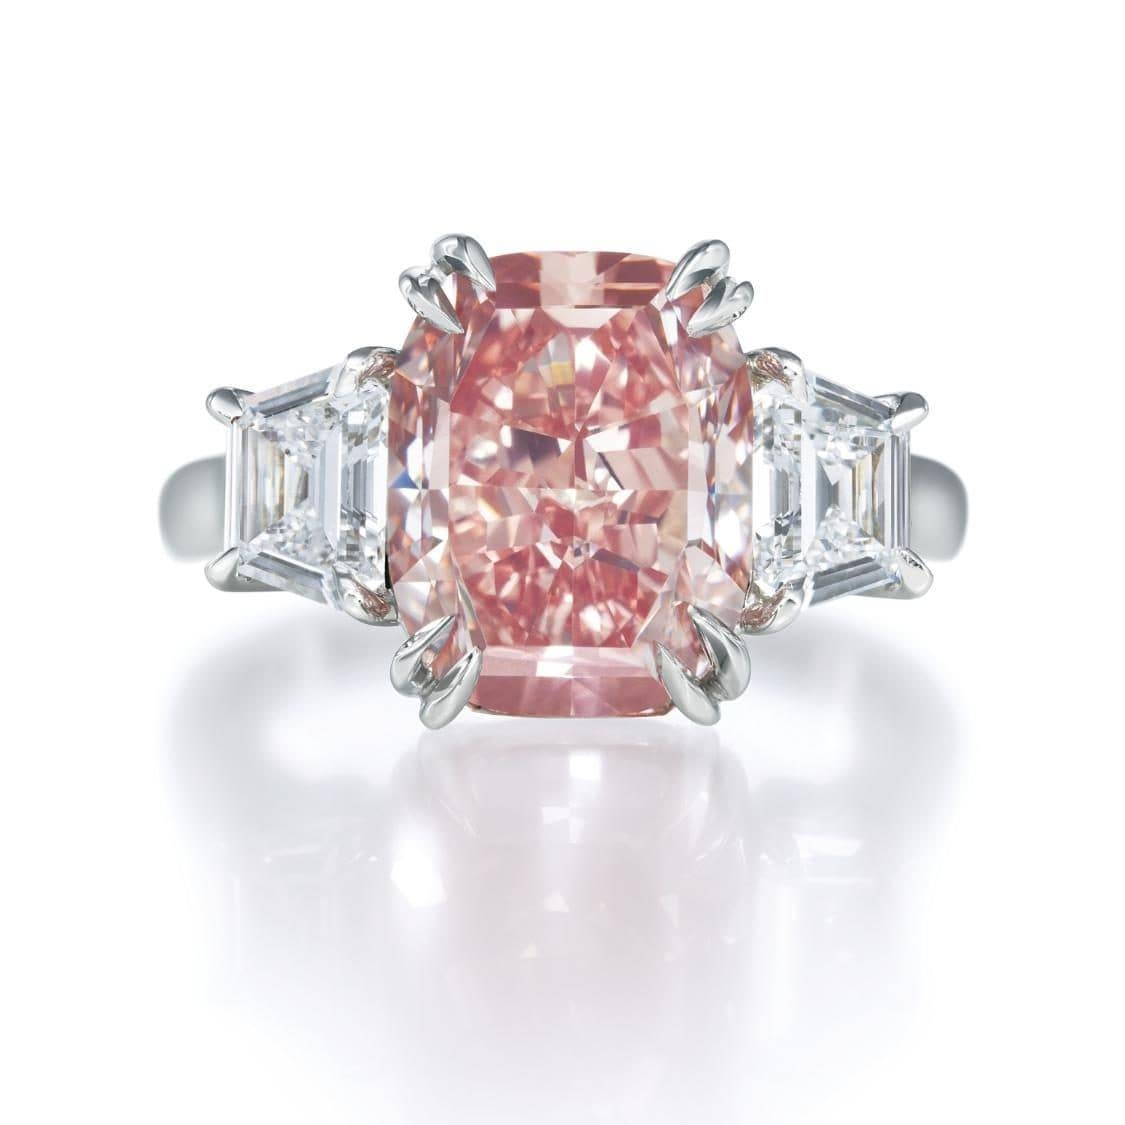 Argyle Pink Diamond Engagement Rings – Pink Diamond Engagement Regarding Feminine Engagement Rings (View 11 of 15)